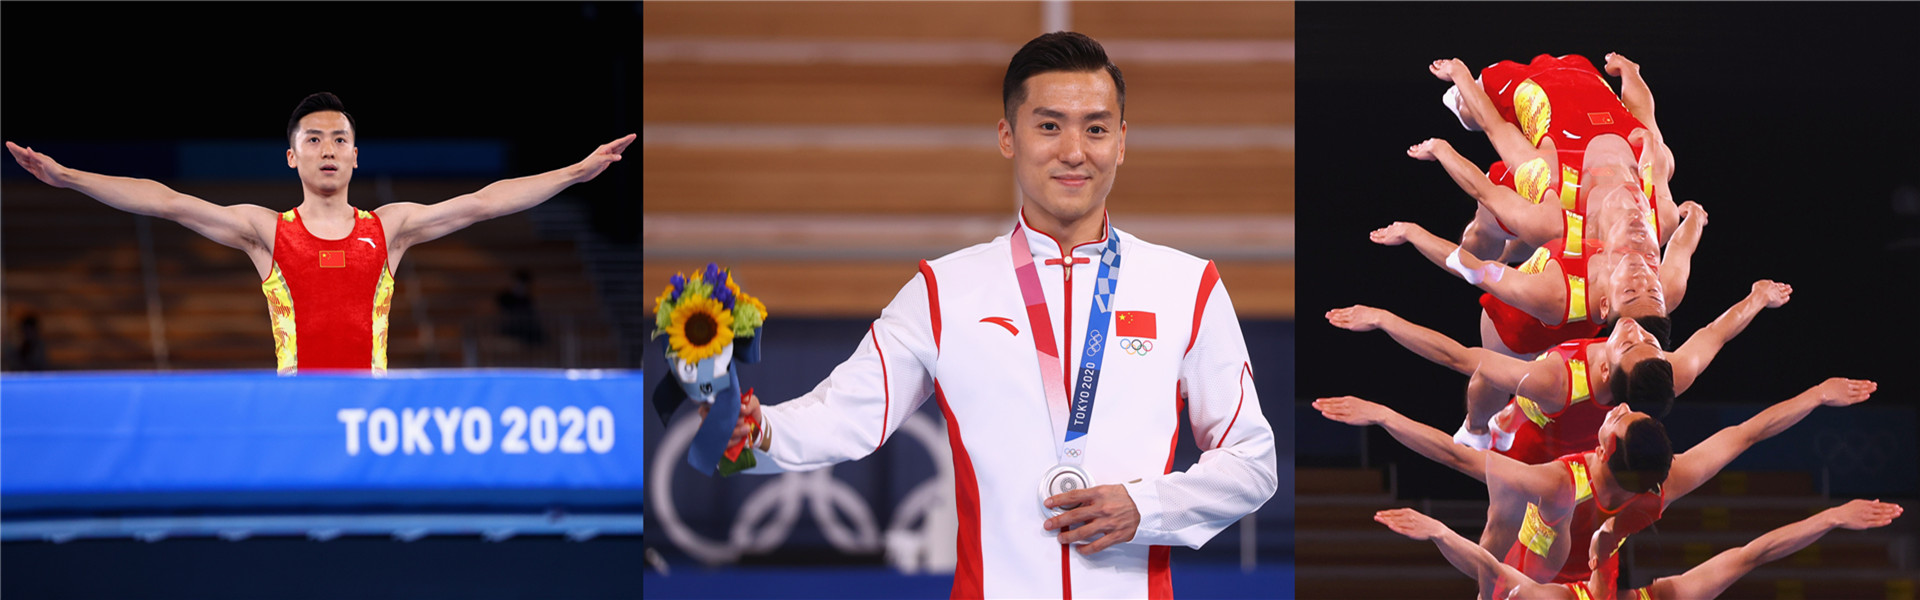 Datong athlete wins silver in men's trampoline at Tokyo Olympics